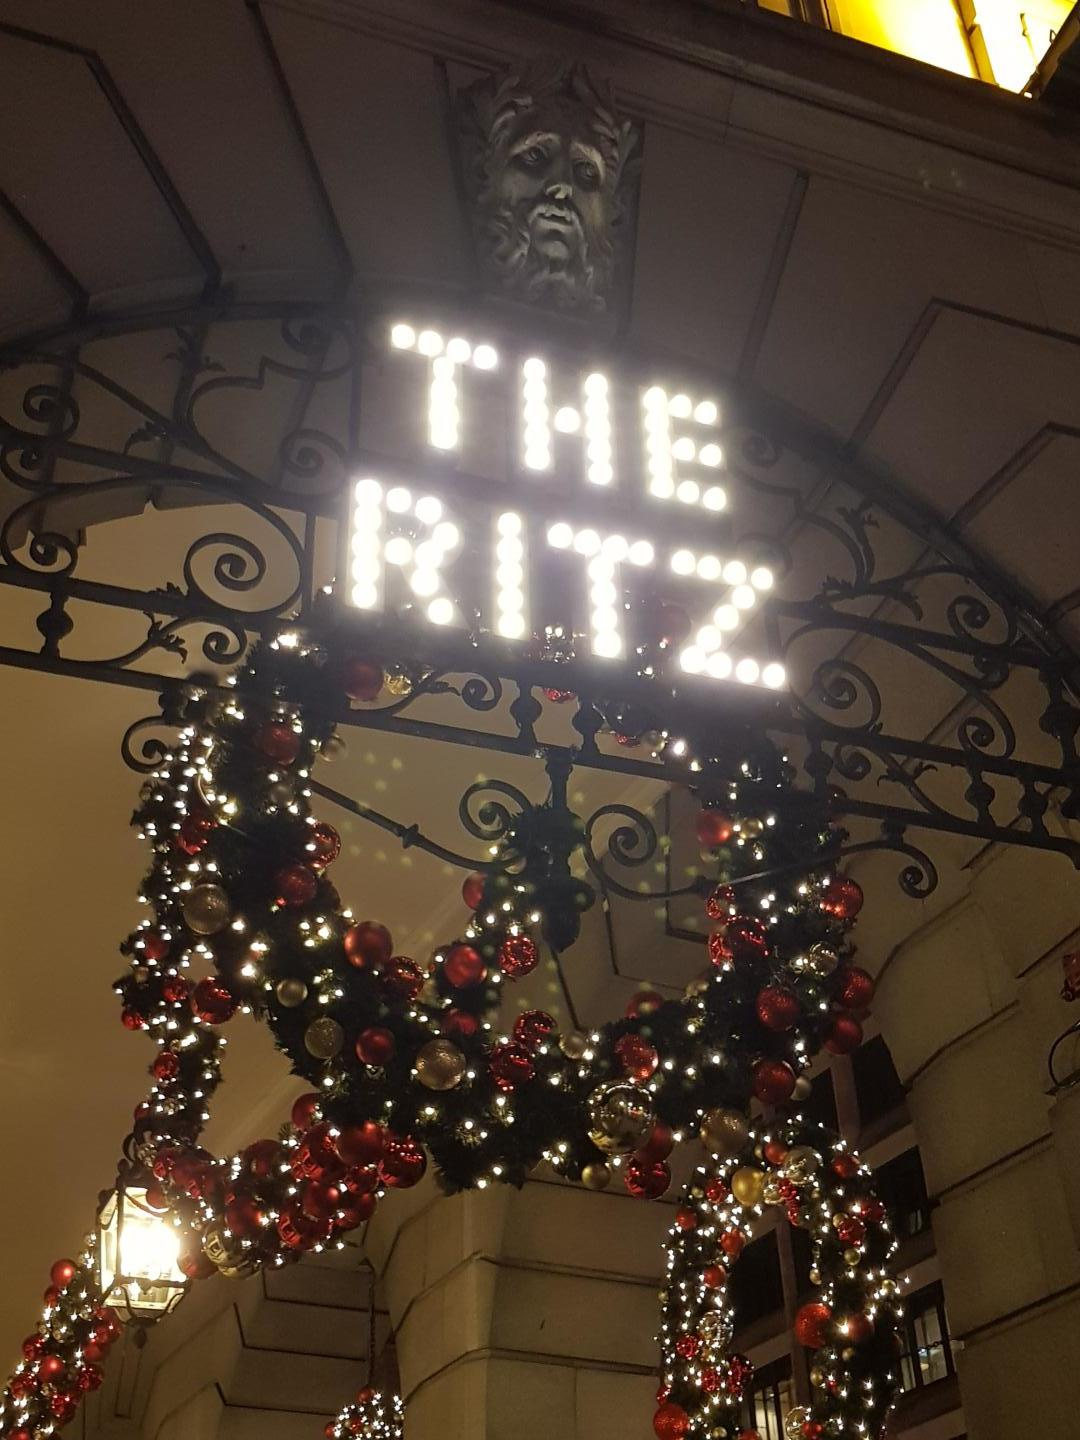 The Ritz in lights